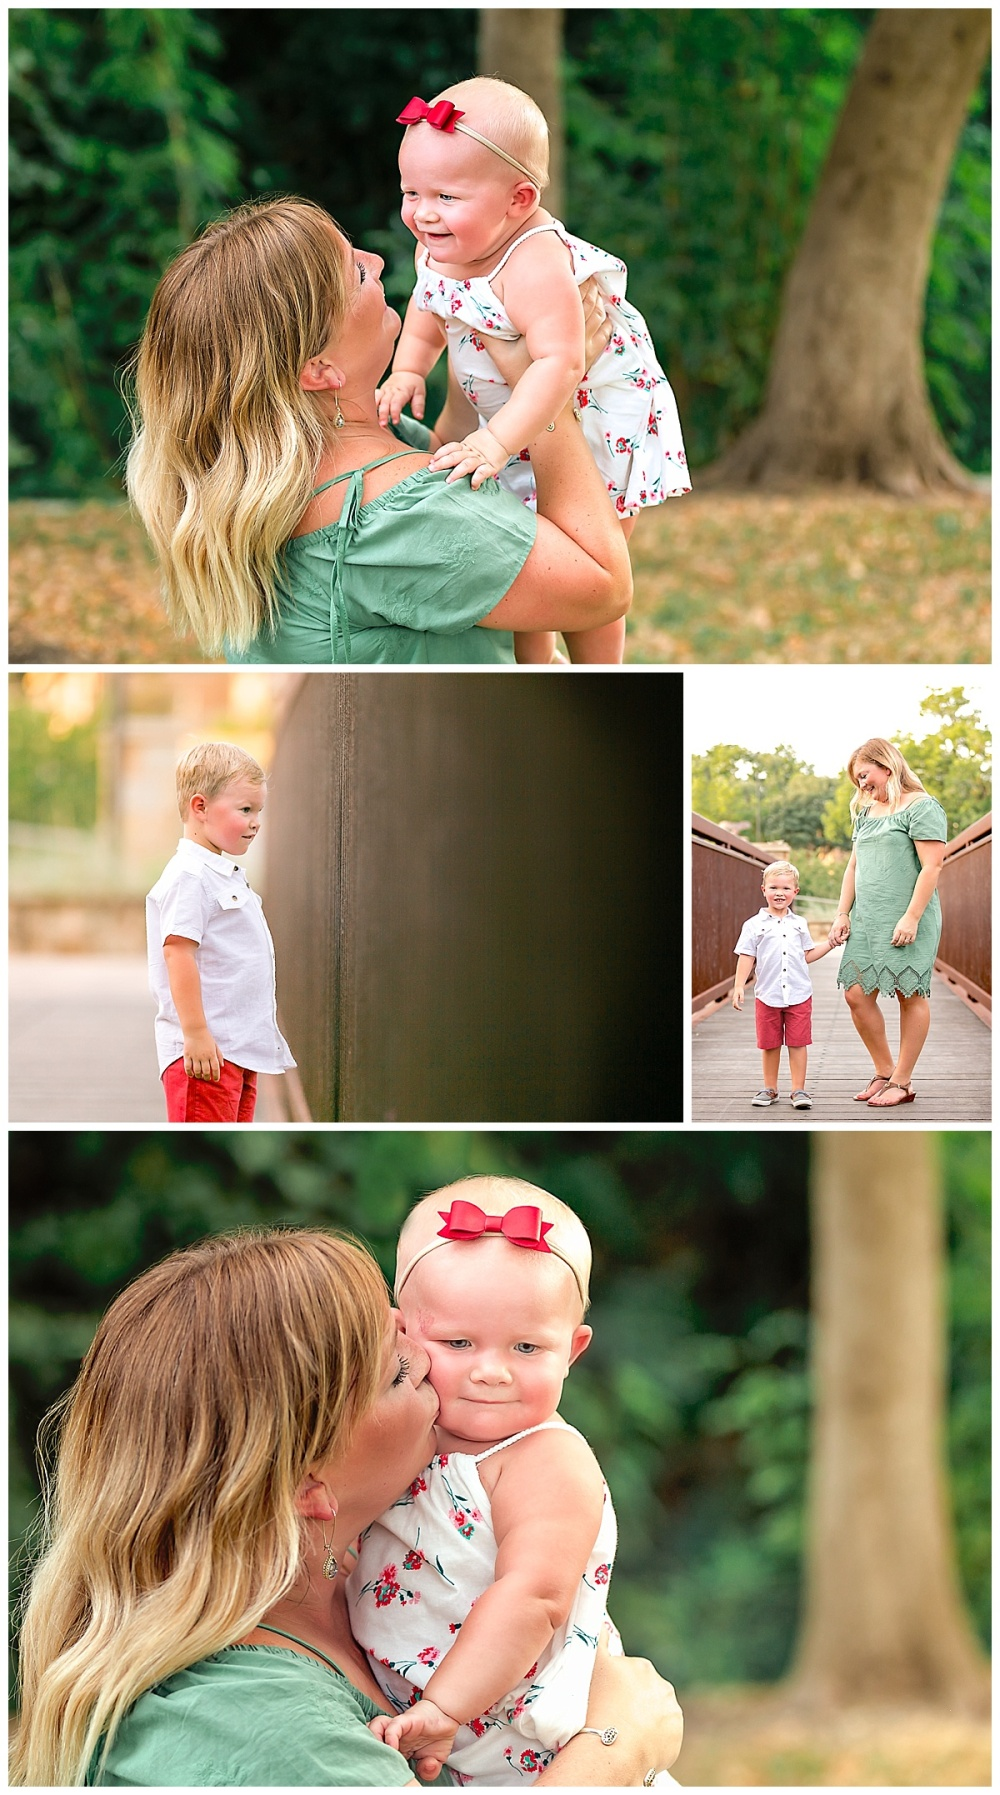 Carly-Barton-Photography-Family-Photos-Walnut-Springs-Park-Seguin-Texas-Pierdolla-Birthday_0008.jpg